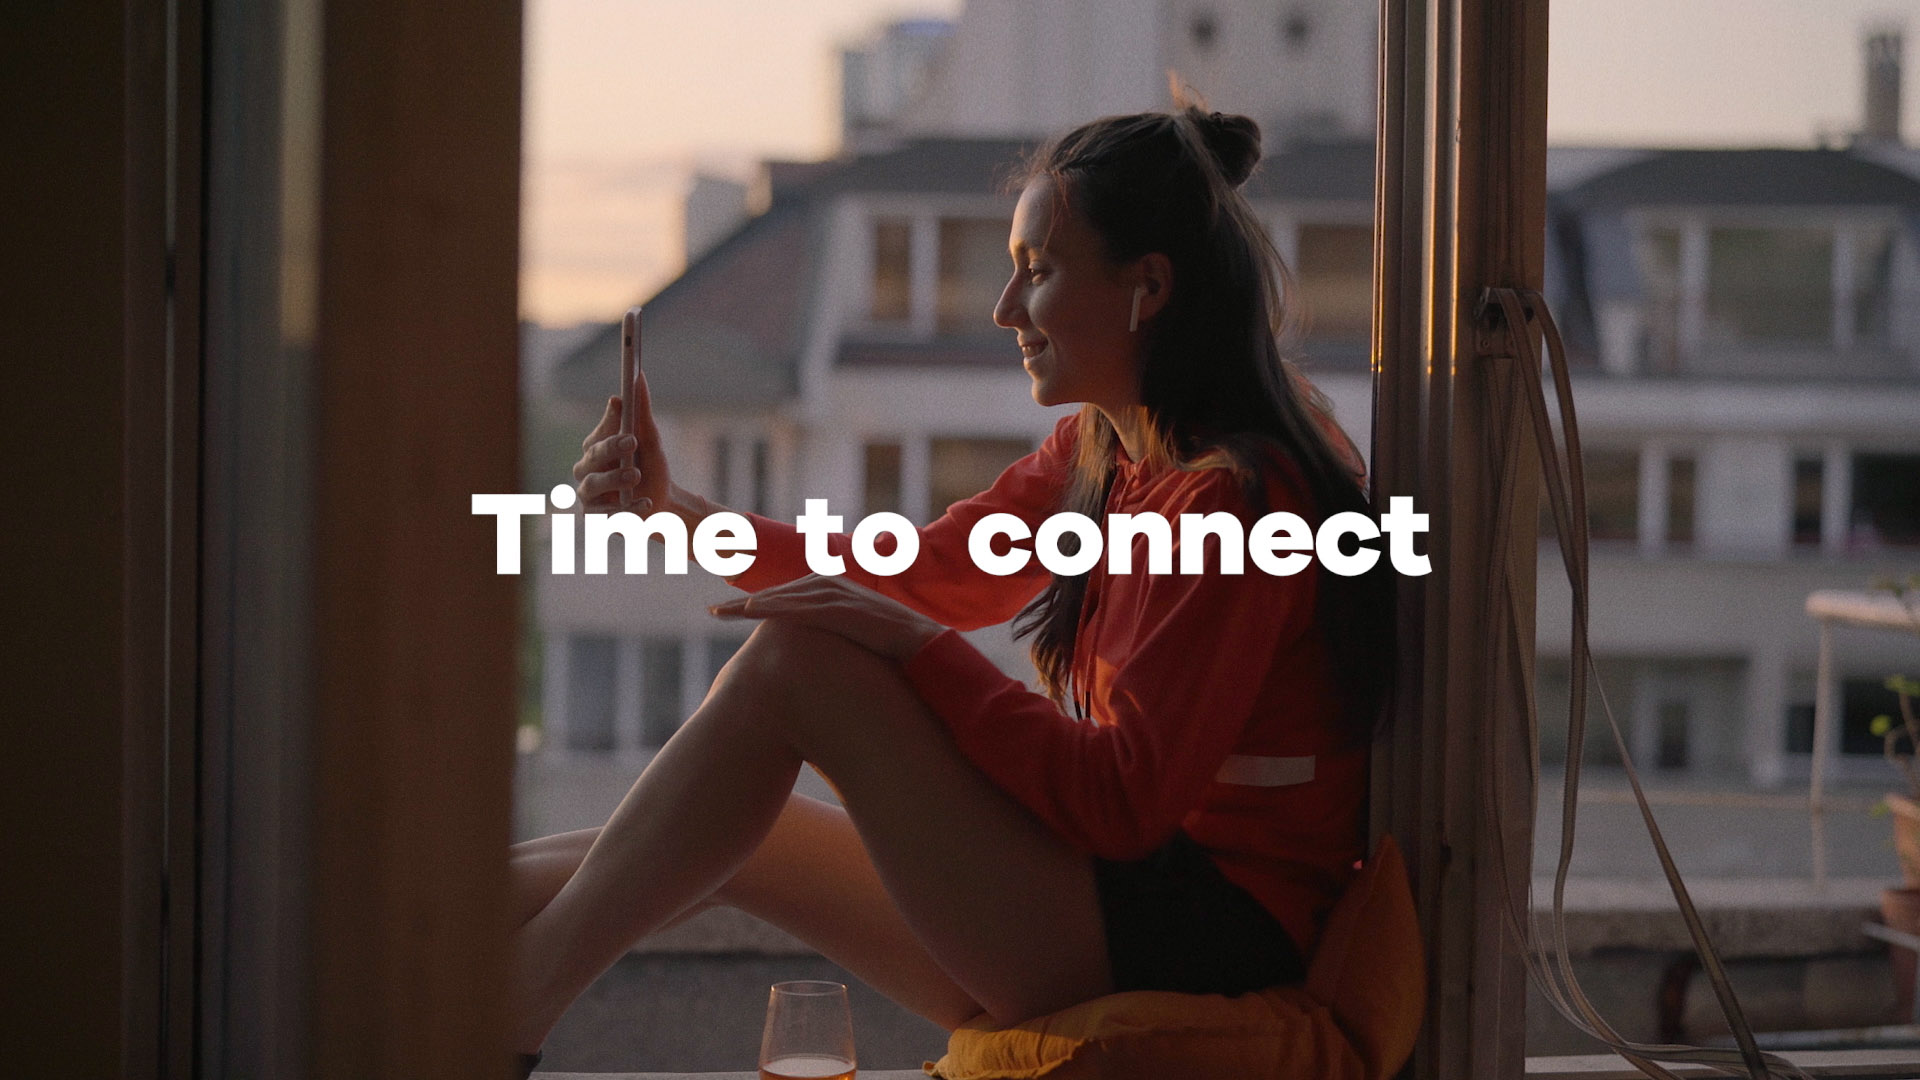 Bumble - Time to Connect